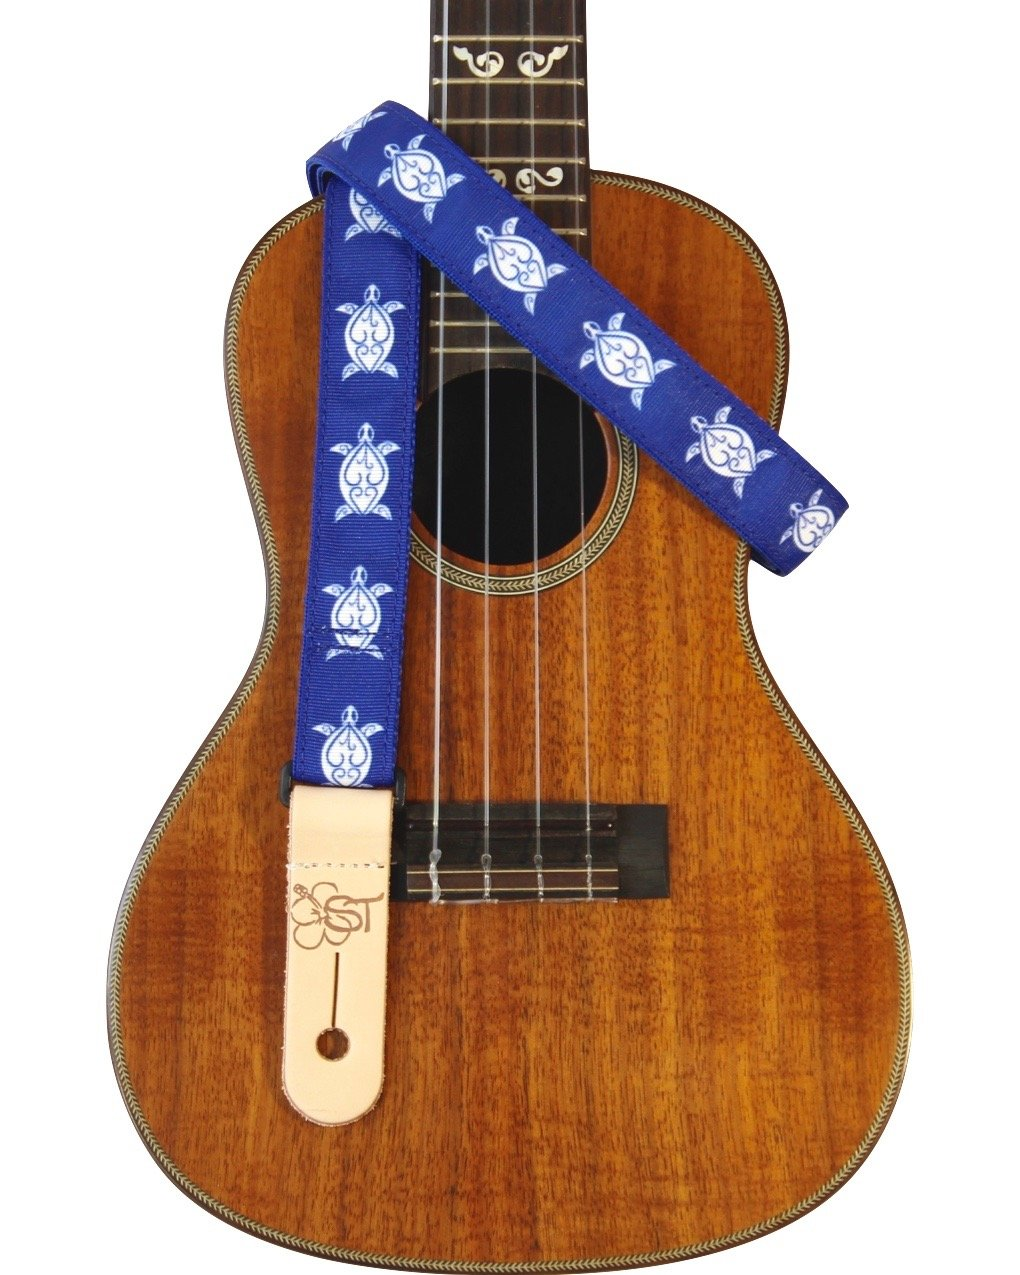 Sherrin's Threads 1 Hawaiian Print Ukulele Strap - Blue Turtle